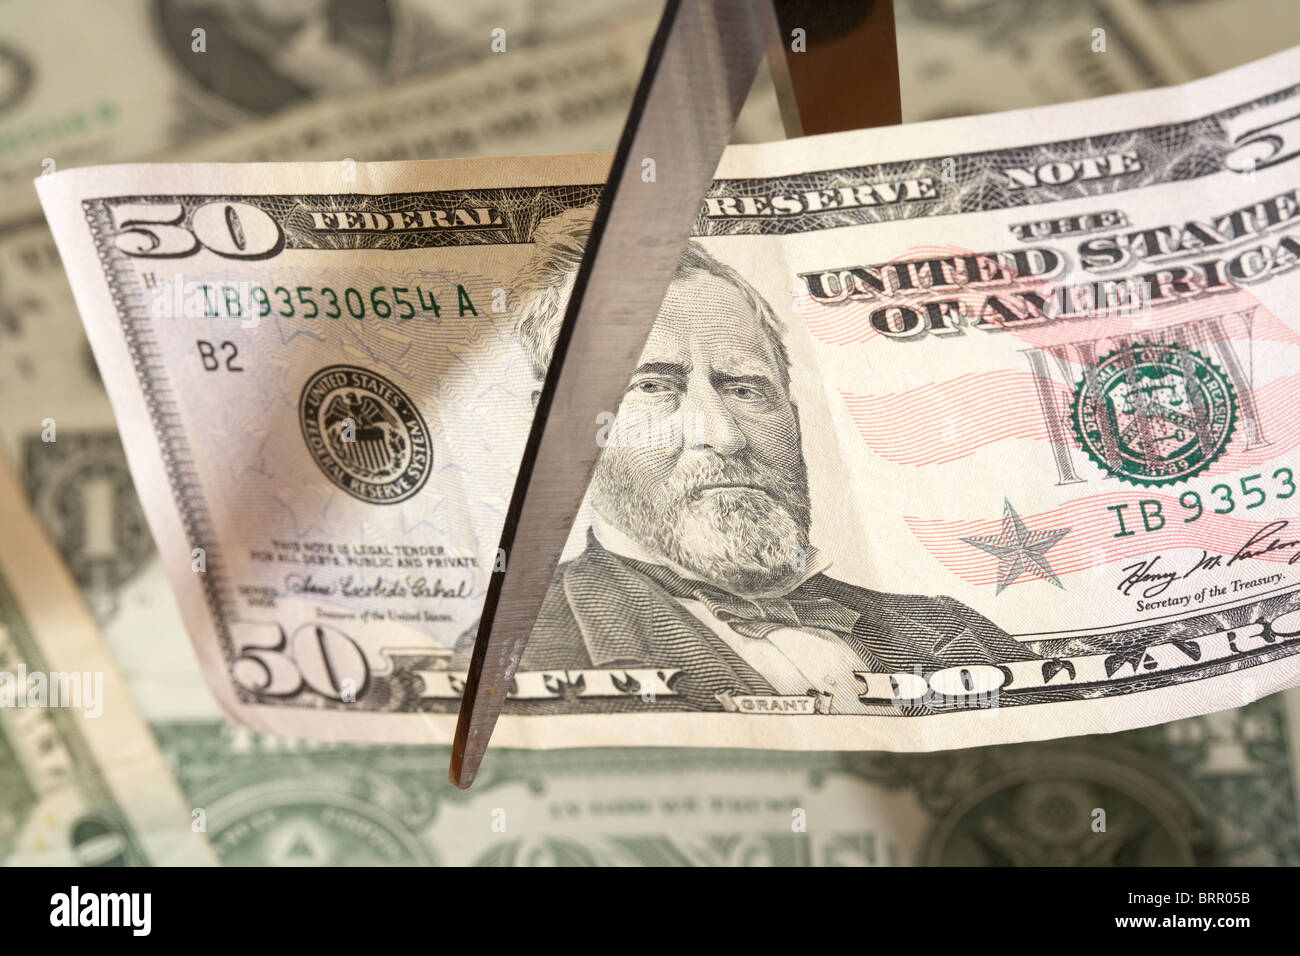 pile of us dollar banknotes with a fifty dollar bill being cut with a pair of scissors - Stock Image